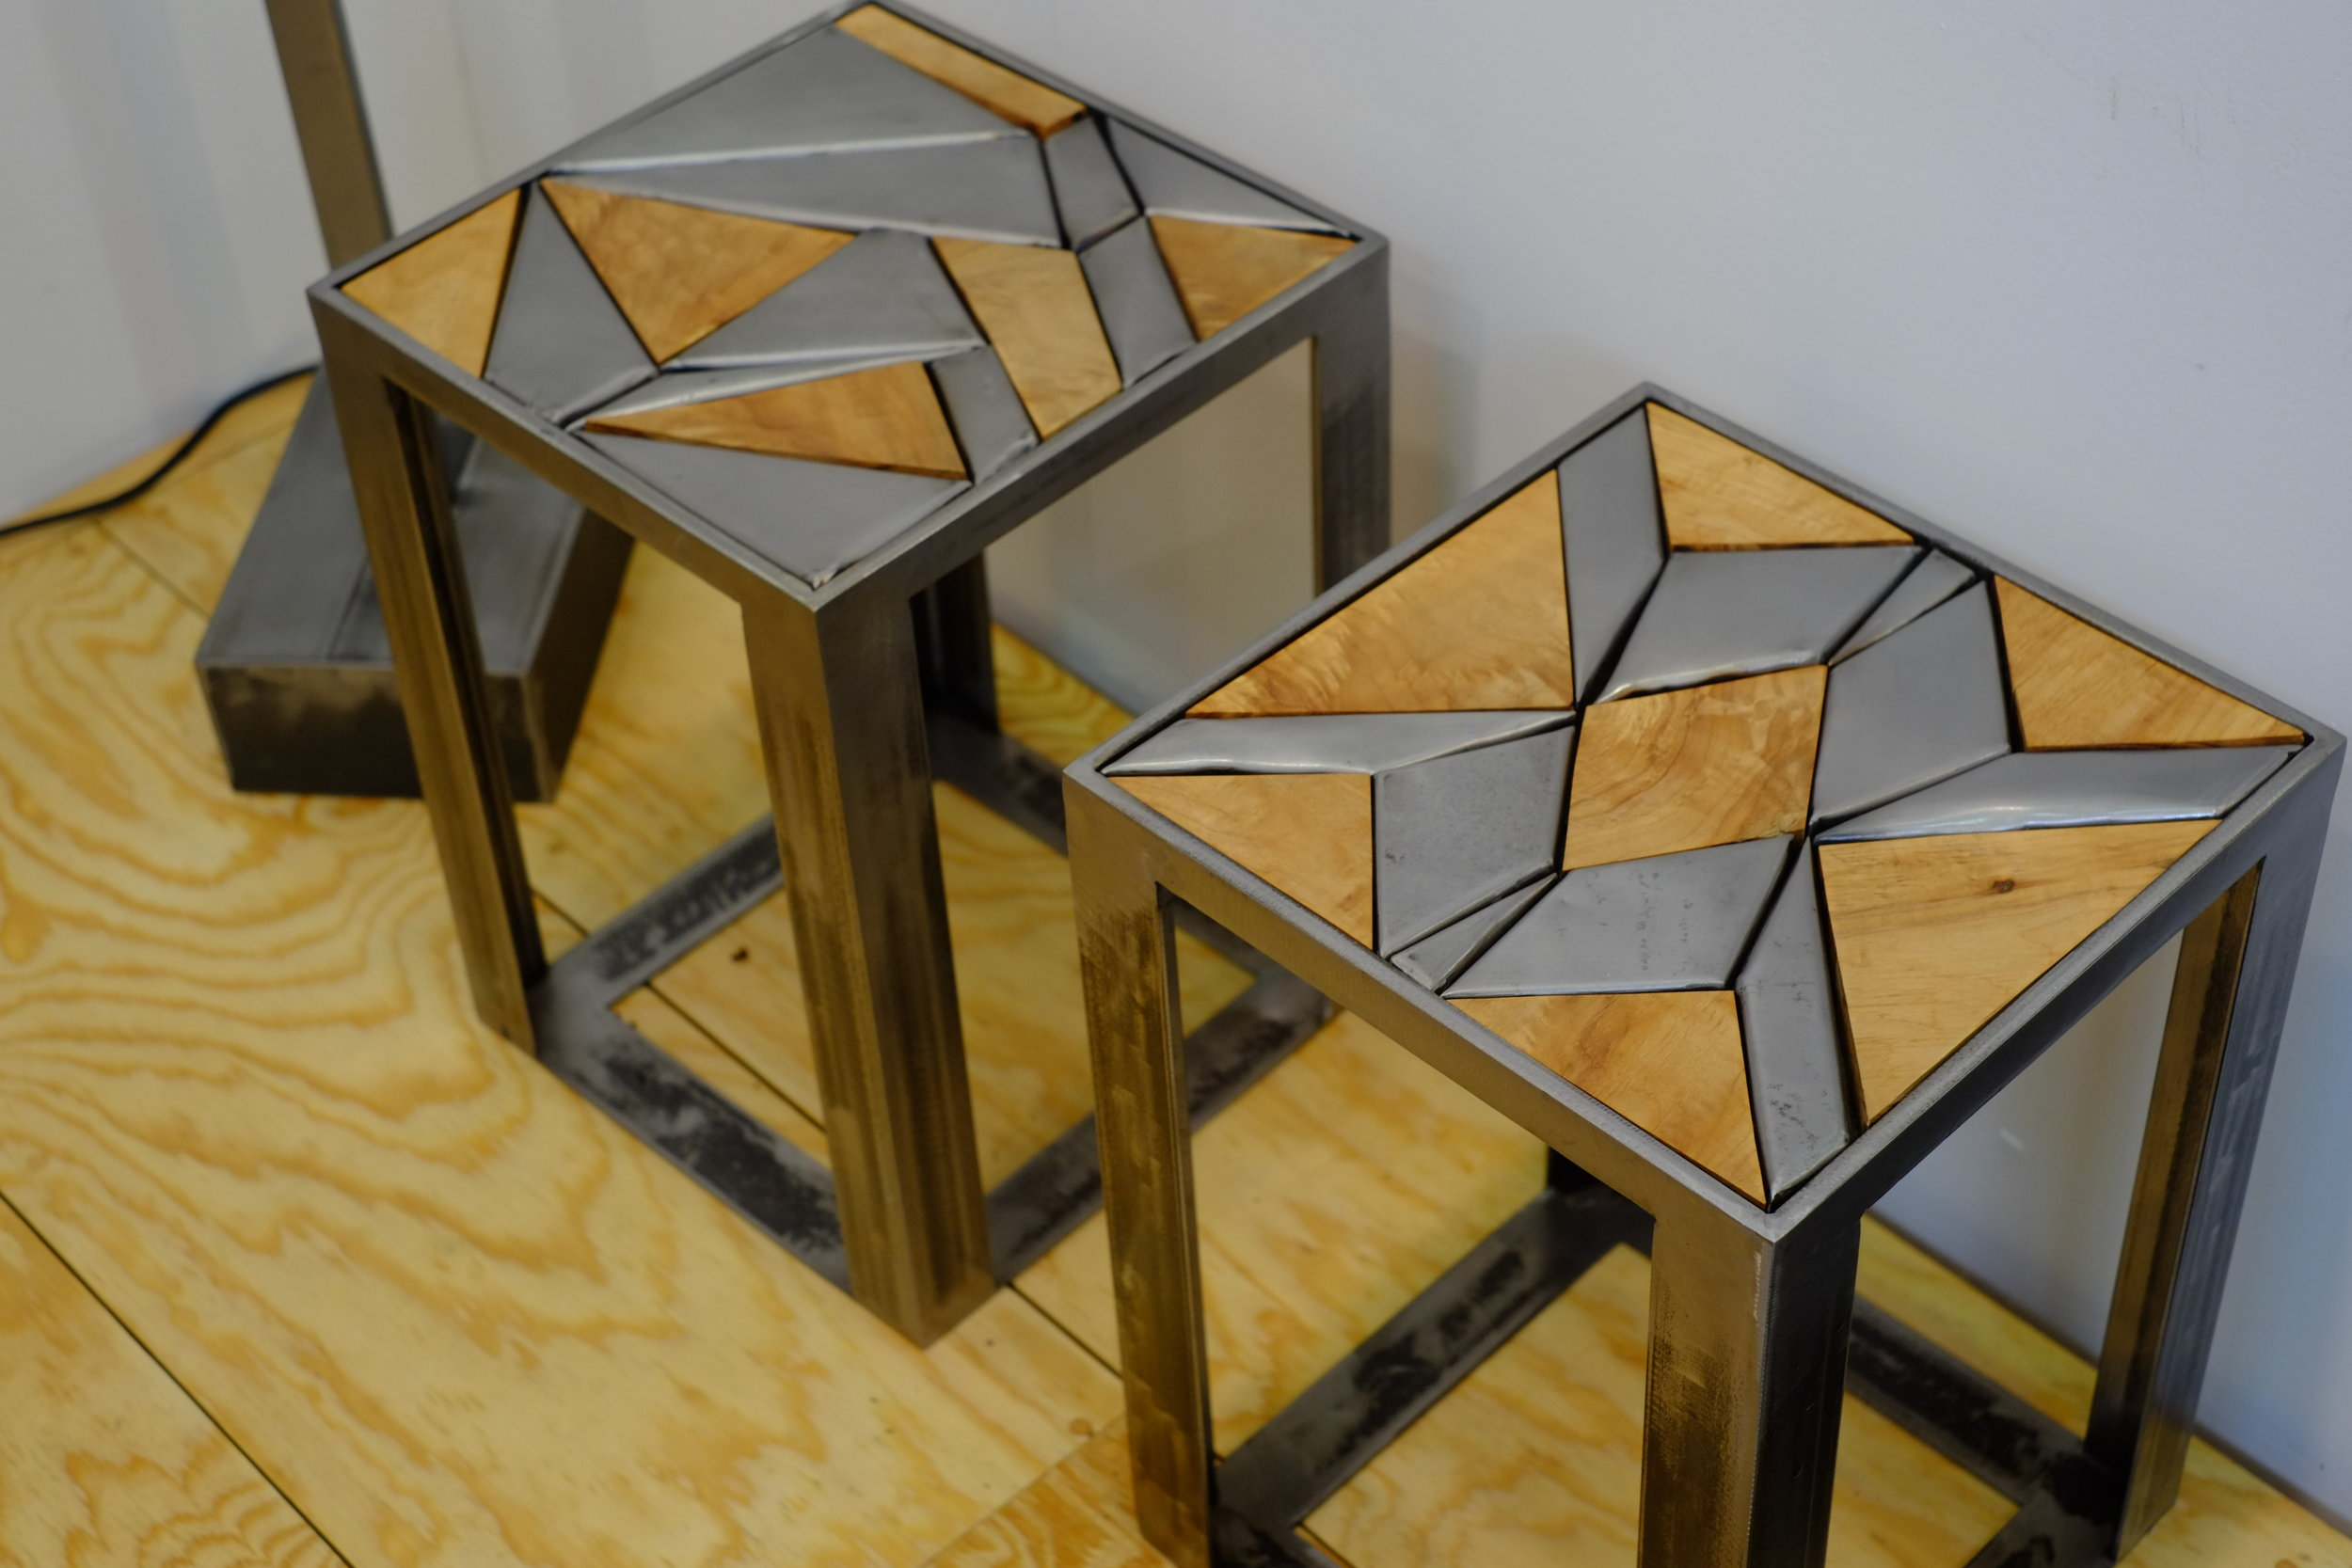 FINISHED QUILT STOOLS